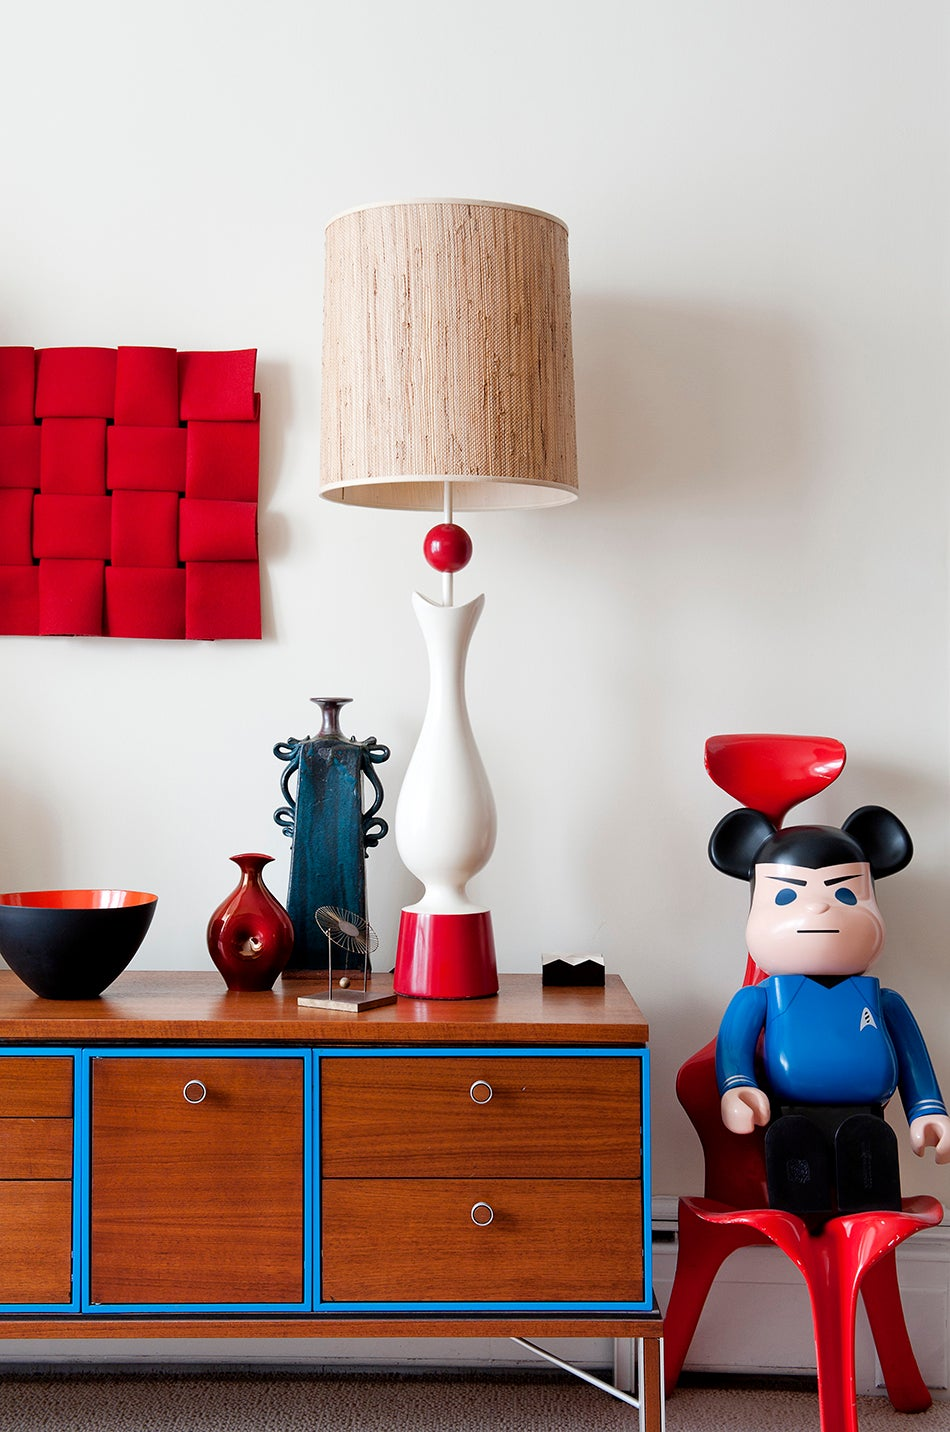 Zoubok recently started collecting vintage design for his home, including a 1940s French lamp from Kerson Gallery and a red chair from Johnson Trading Gallery, both 1stdibs dealers. Photo by Emily Andrews